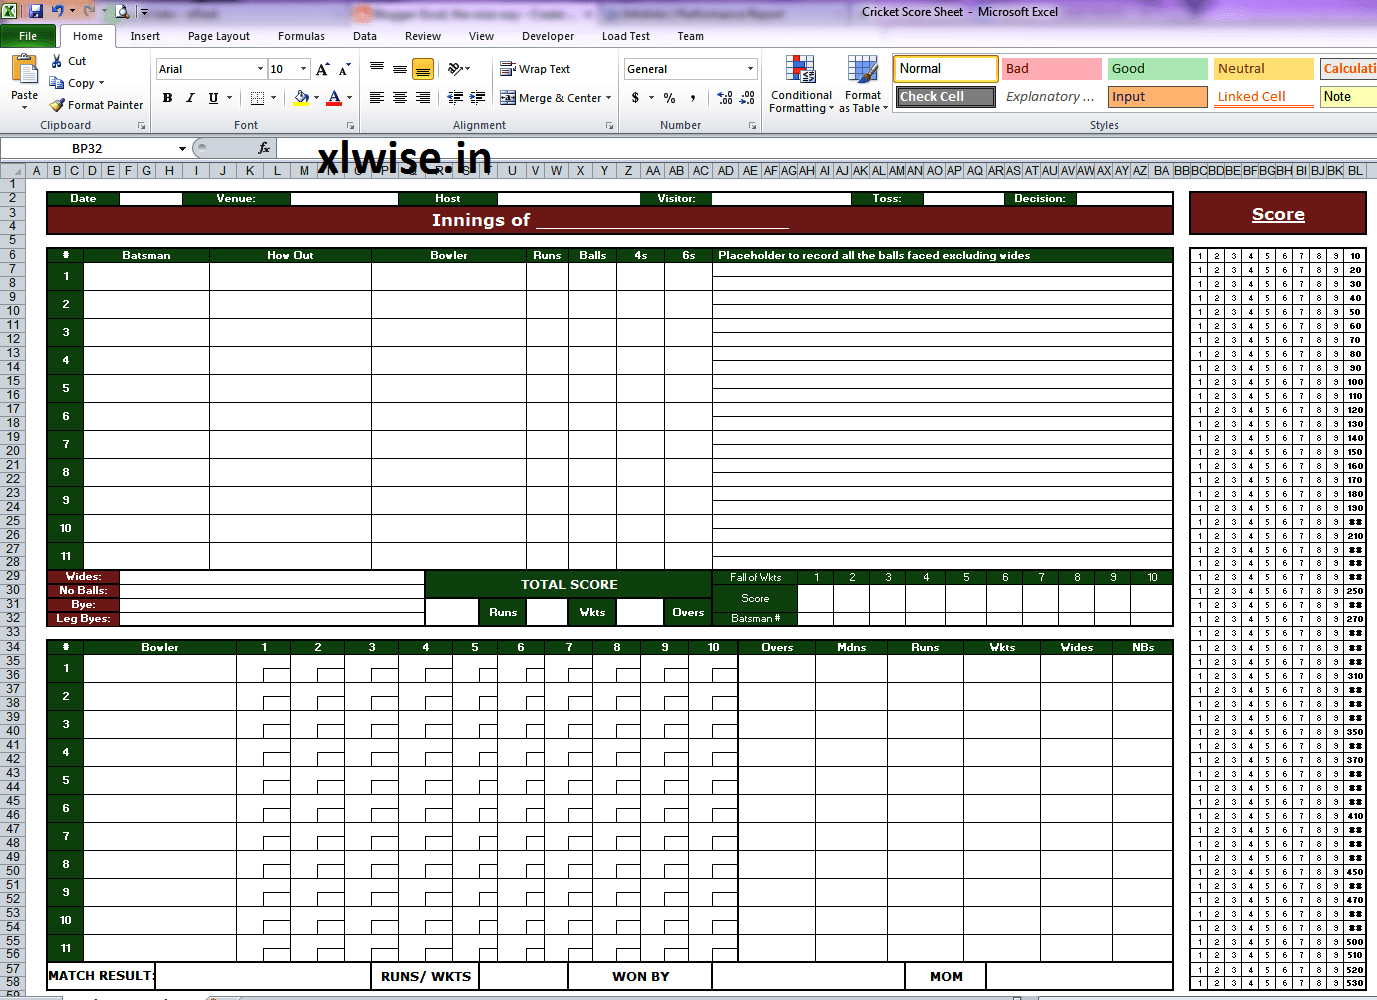 Cricket Score Sheet 50 Overs Excel The Wise Way